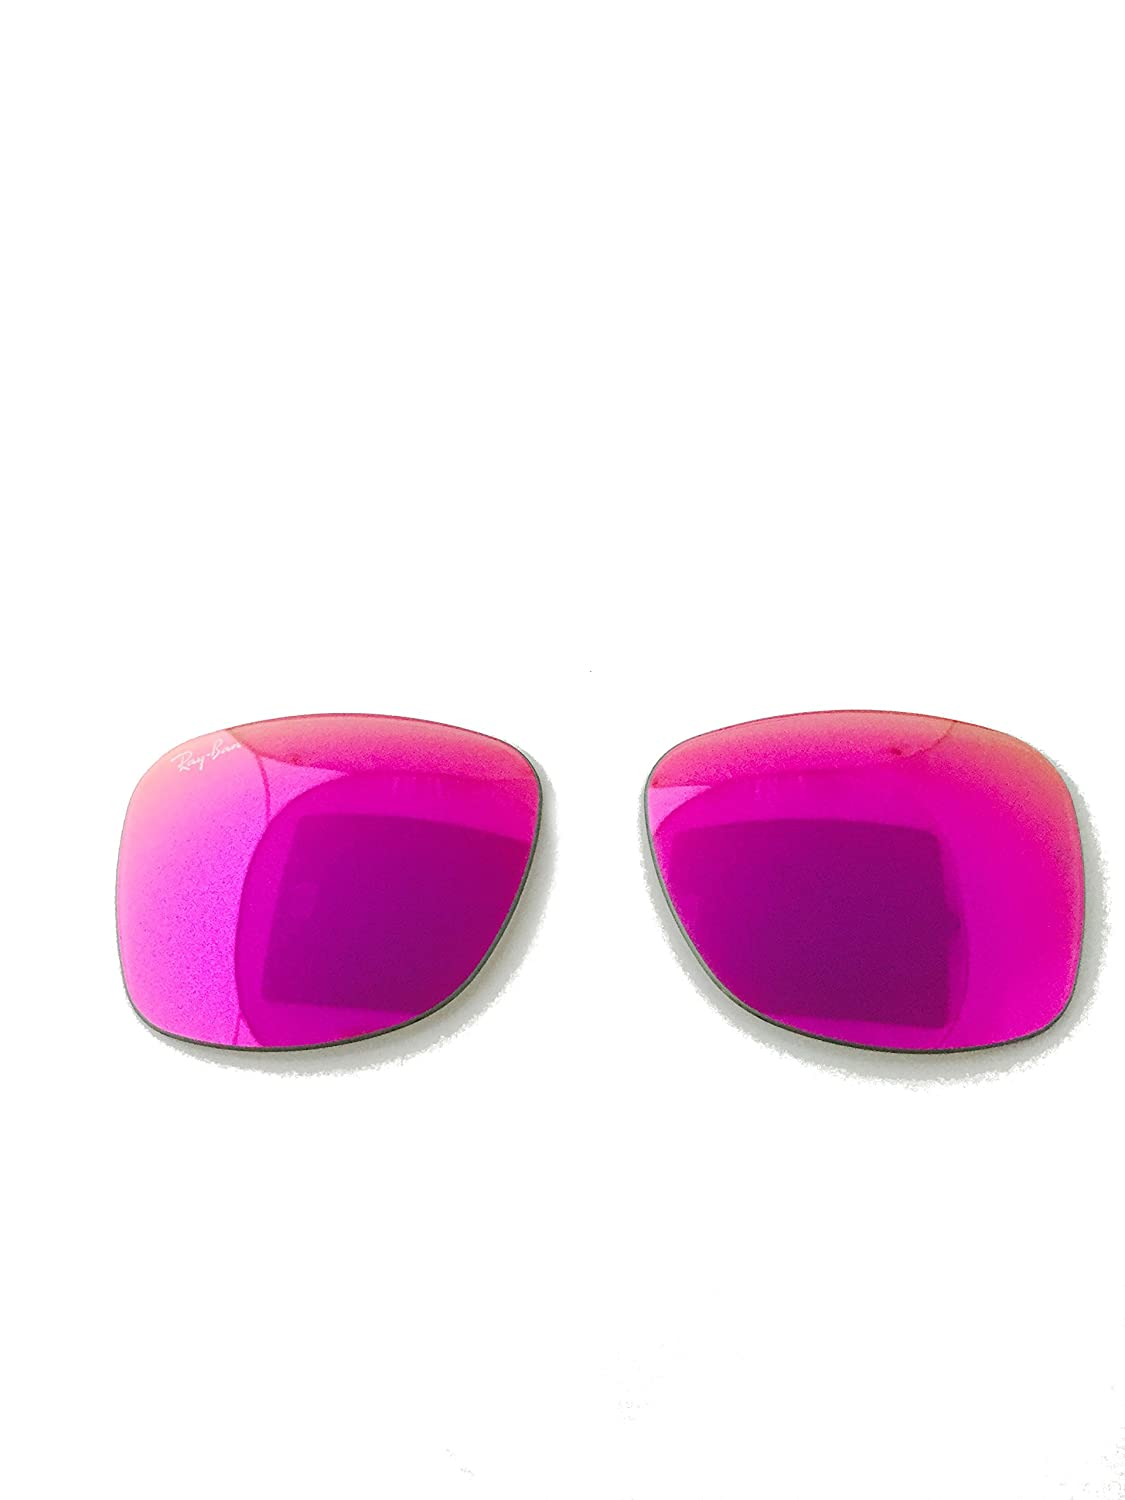 5c86e4a7a6 Amazon.com  RAY-BAN RB 2140 11744T MIRROR PINK REPLACEMENT LENSES 50mm + ShadesDaddy  Glasses  Clothing